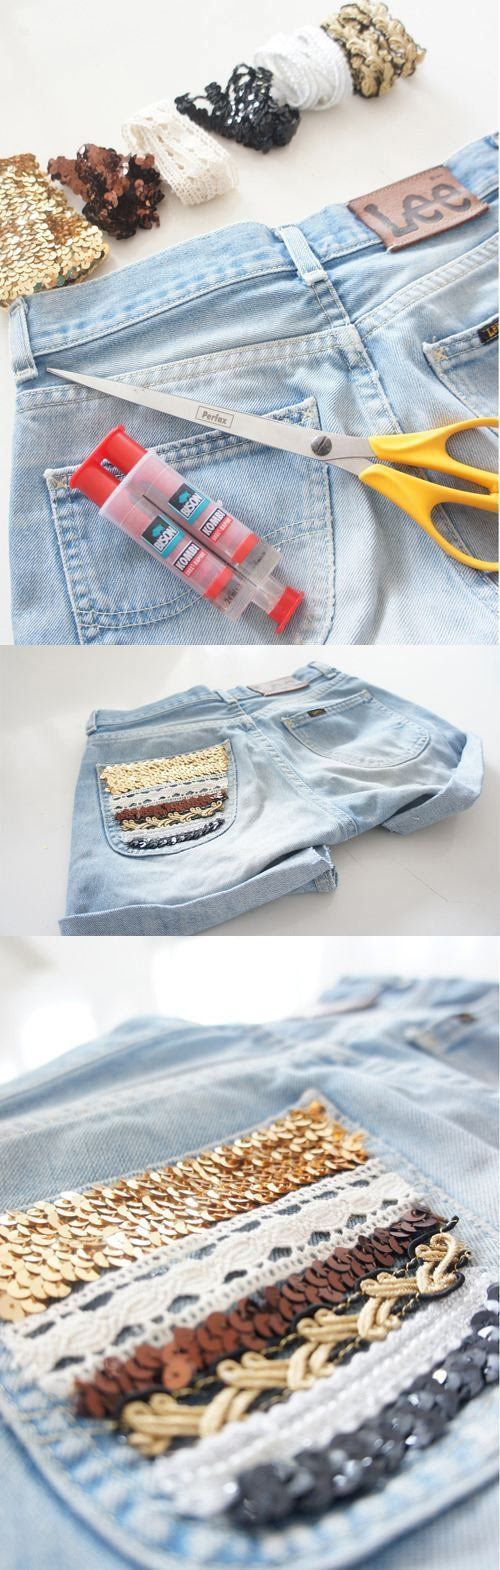 15 Brilliant DIY Ideas to Revamp Your Old Shorts